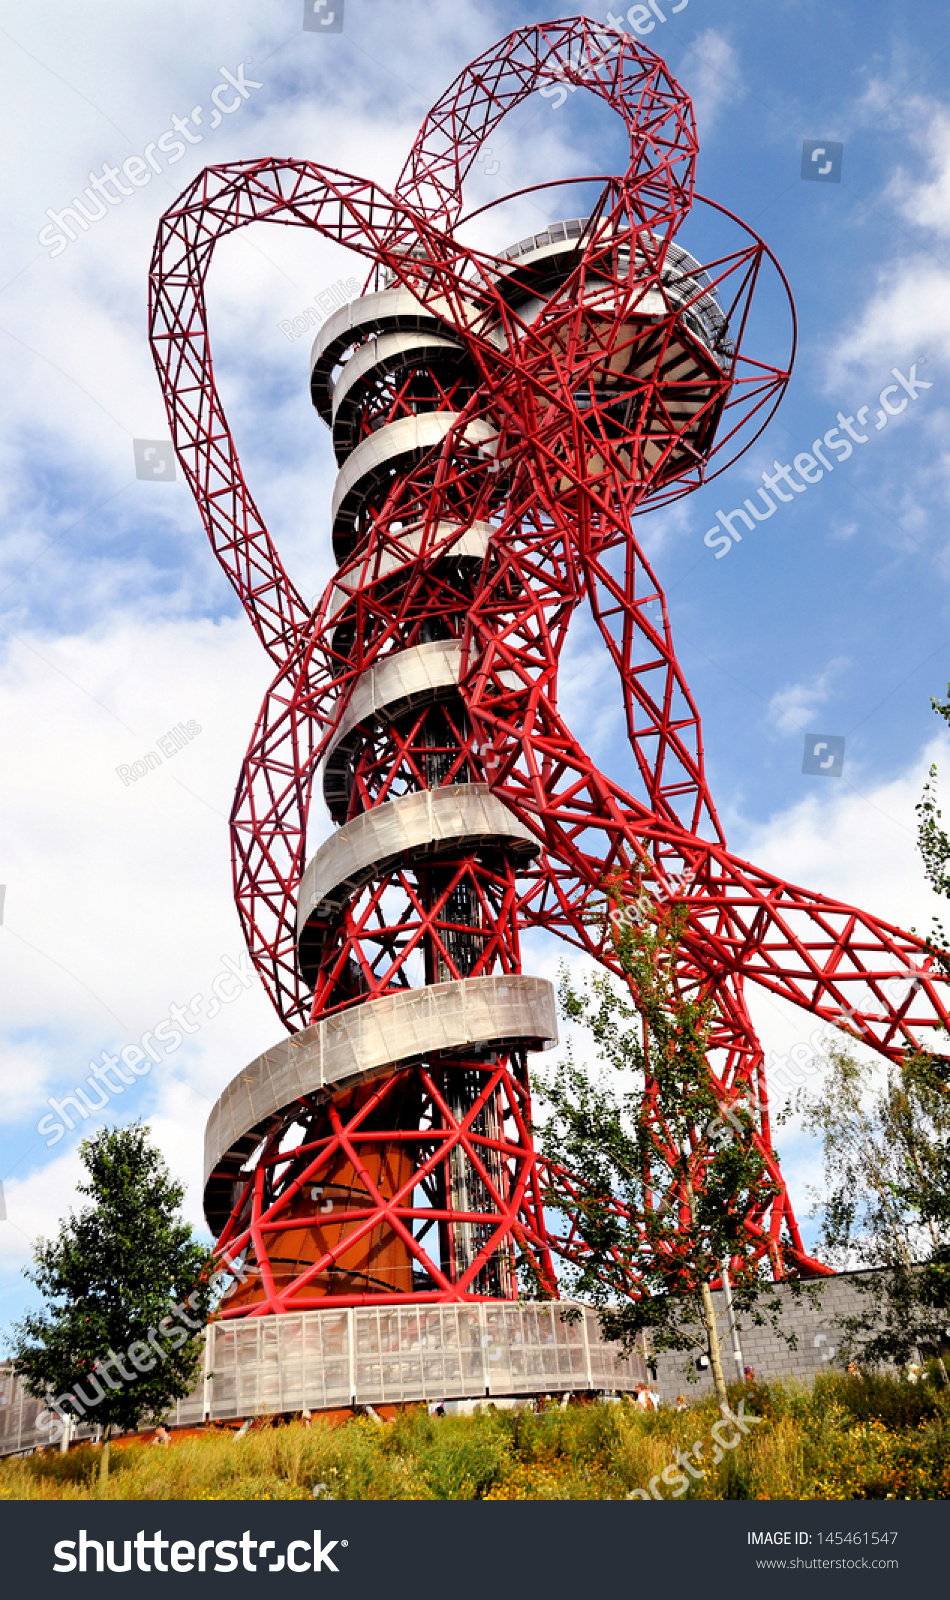 London september 4 arcelormittal orbit symbolic stock photo the arcelormittal orbit is a symbolic structure of the olympic games buycottarizona